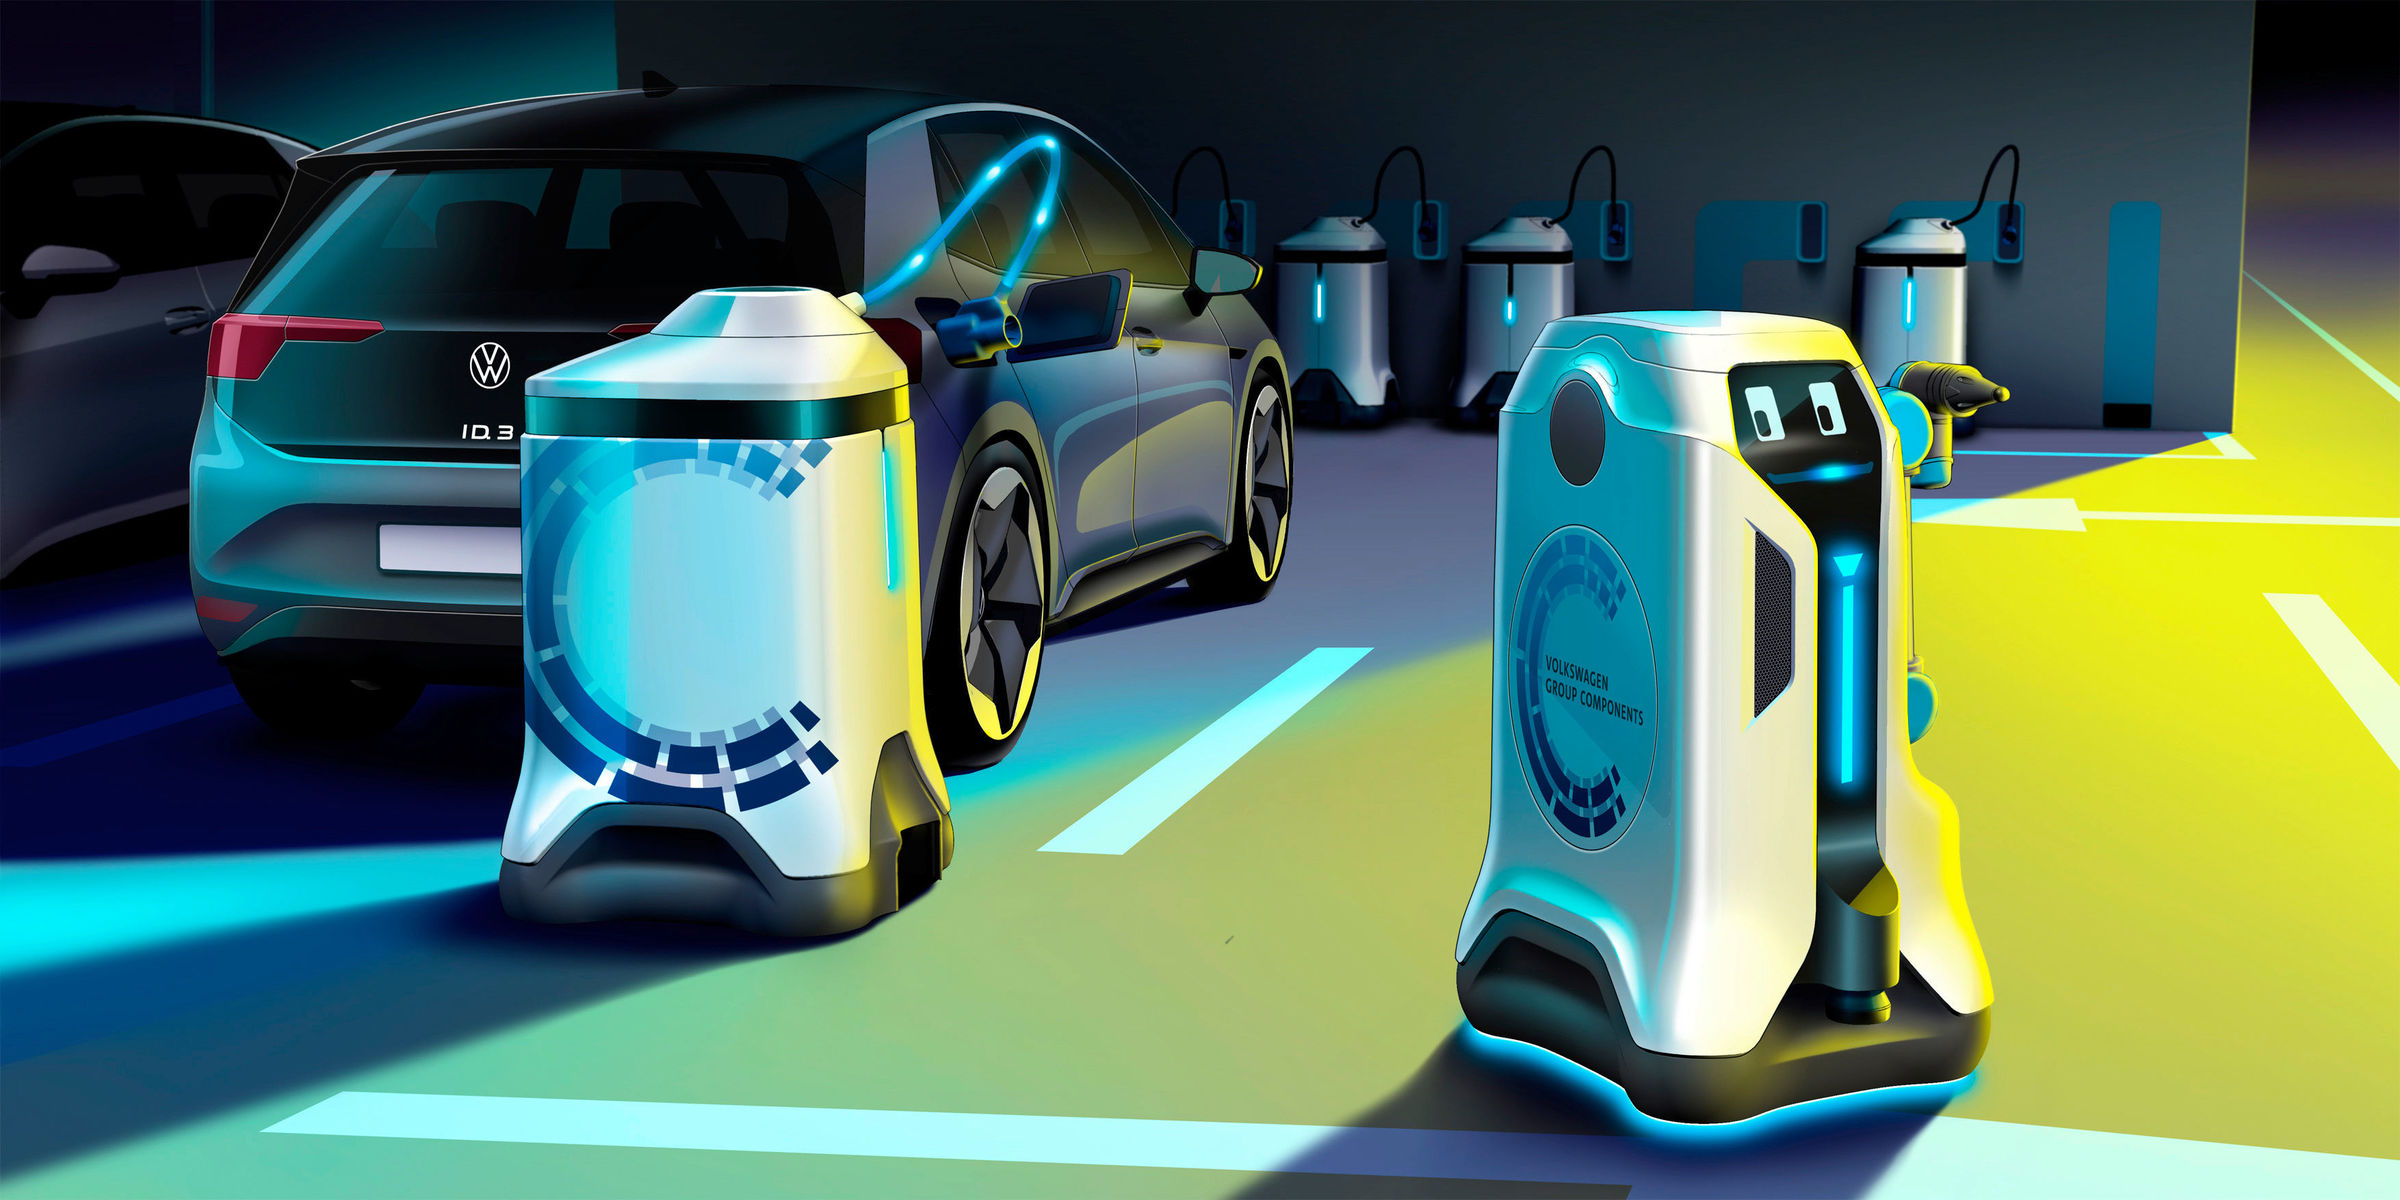 VW provide a glimpse at its mobile charging robot